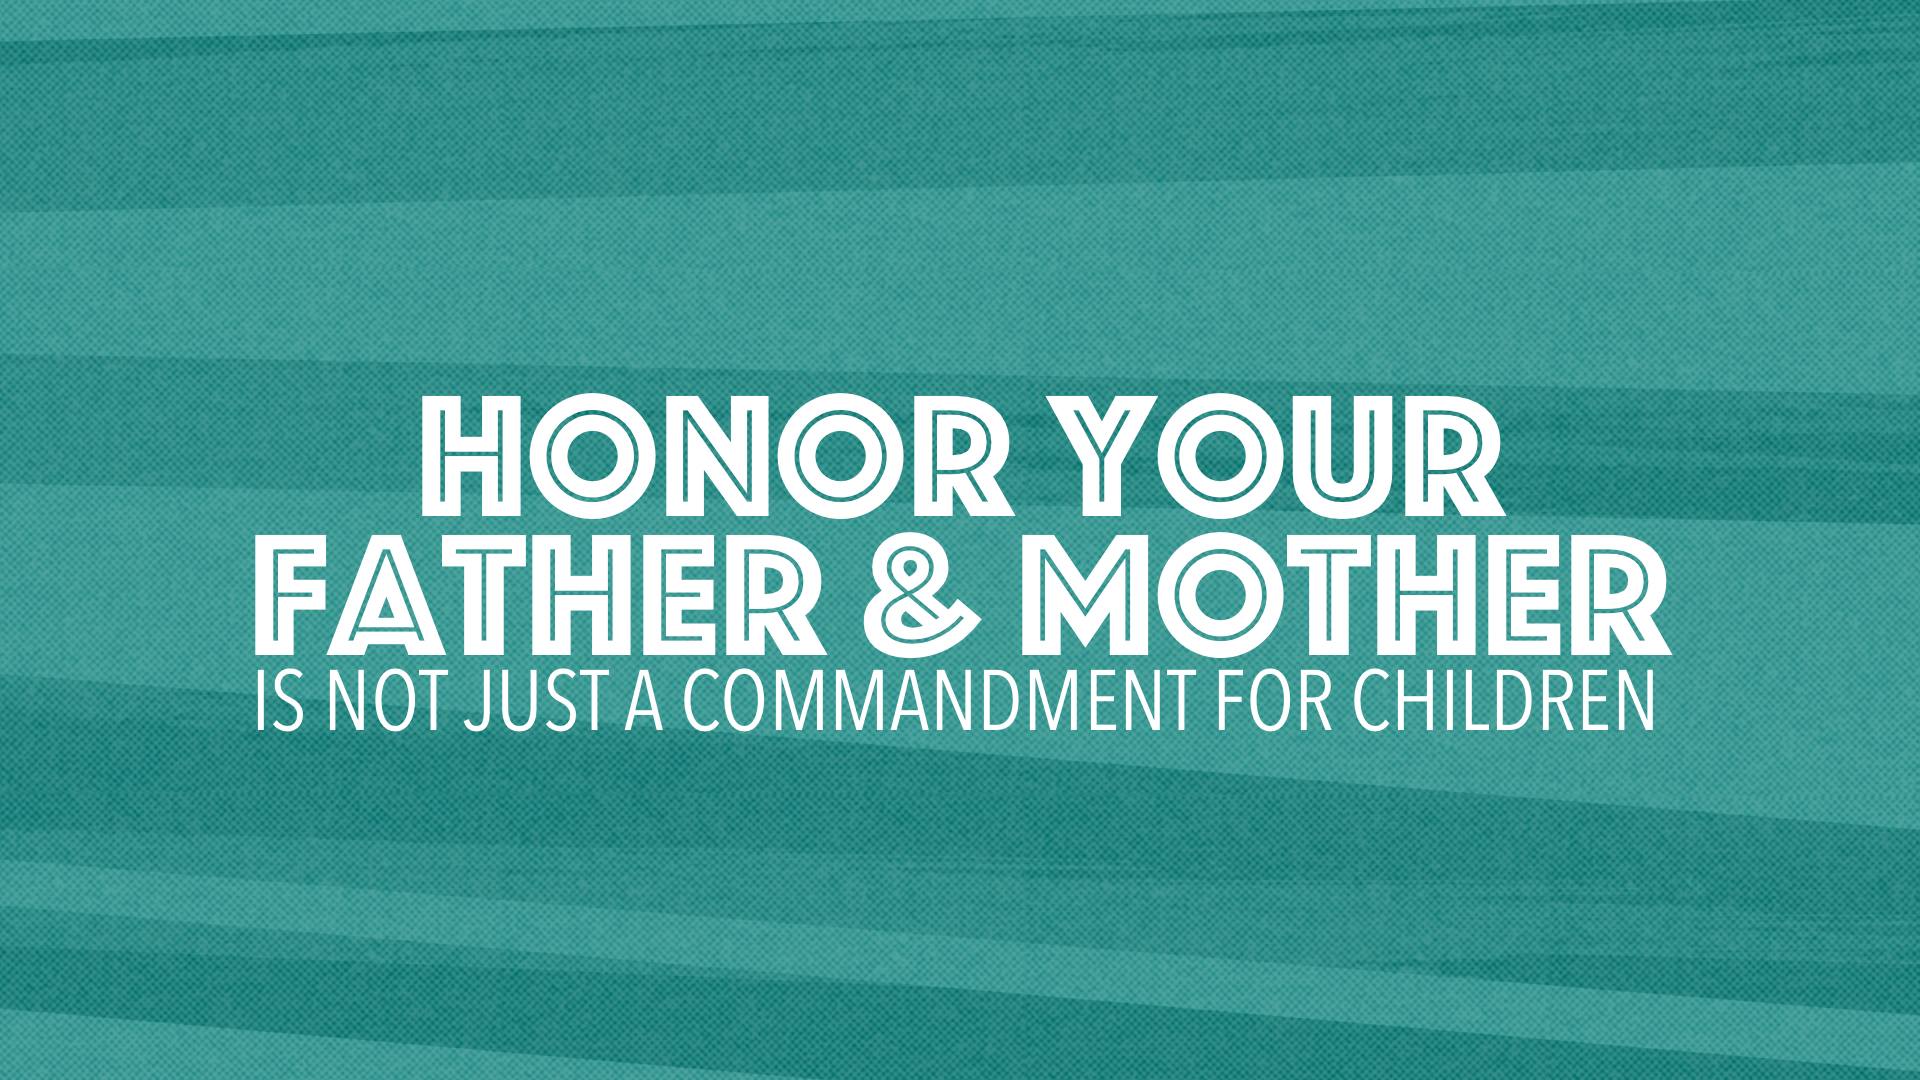 Honor Your Father and Mother Is Not Just a Commandment for